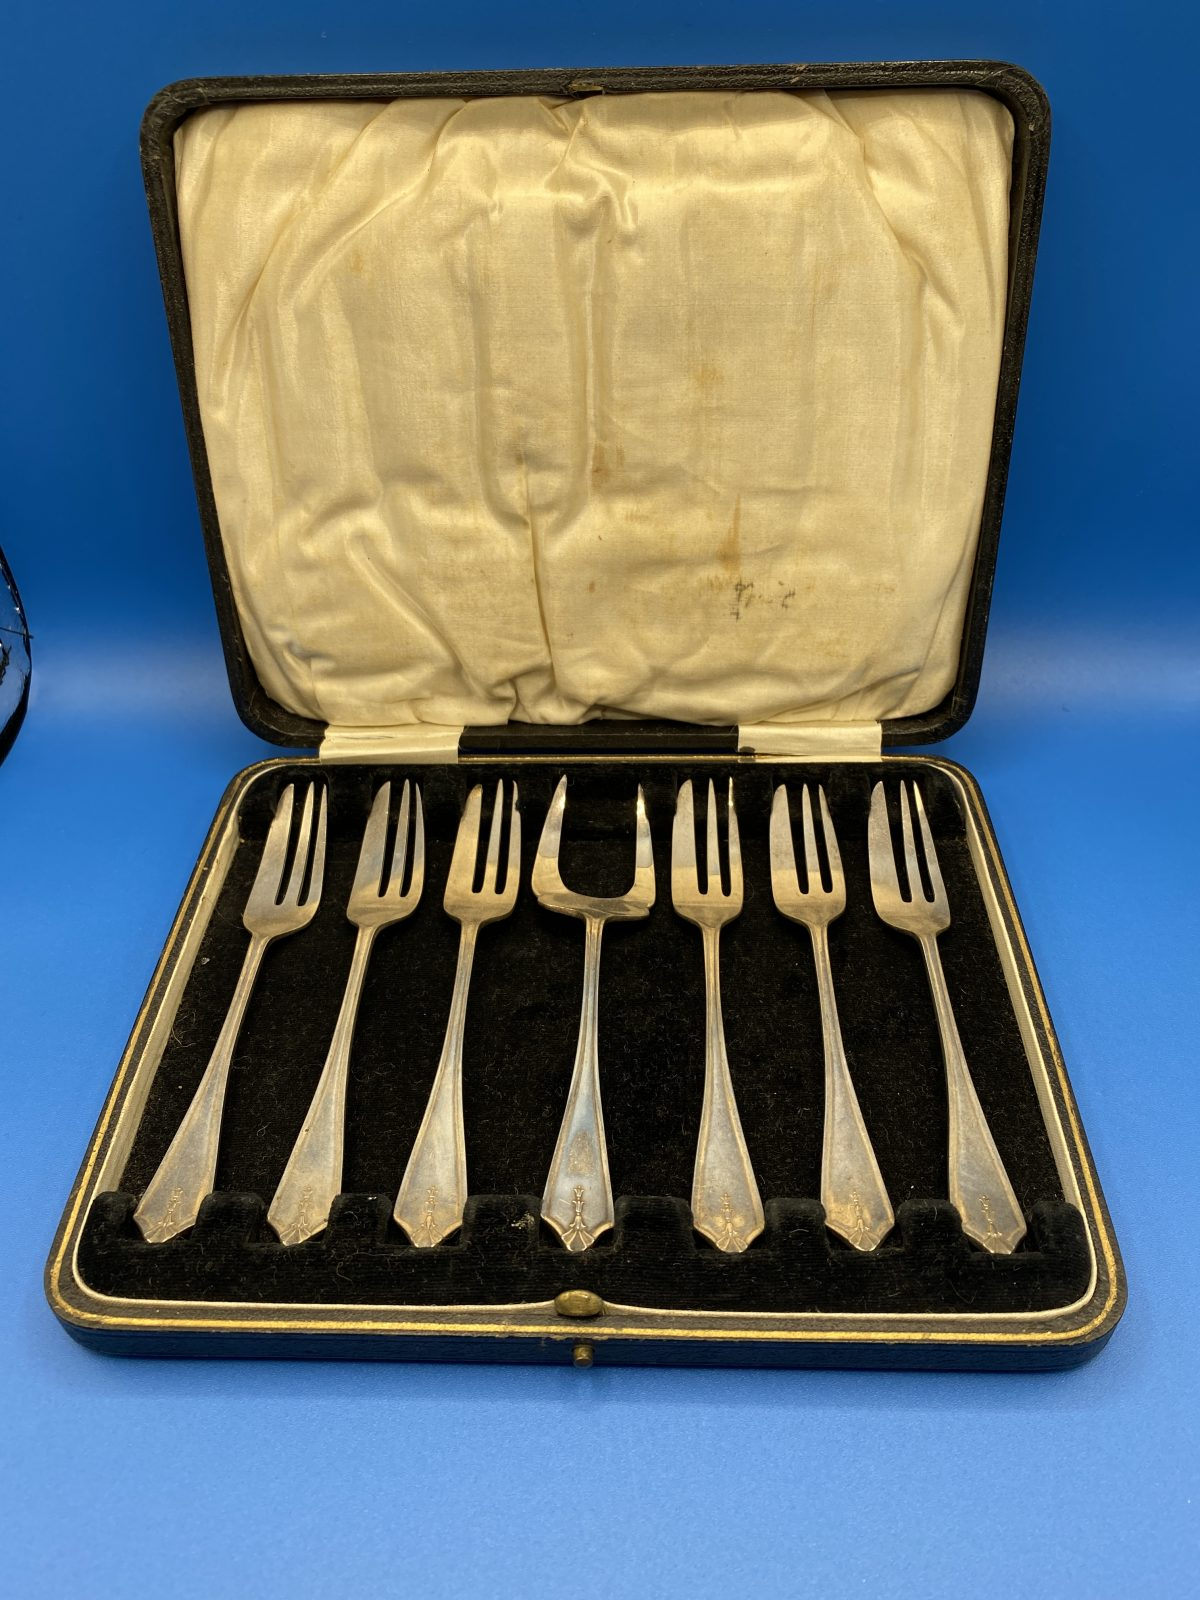 G3 - A Boxed Set of 6 Silver Plated Pastry Forks and Server.  £46